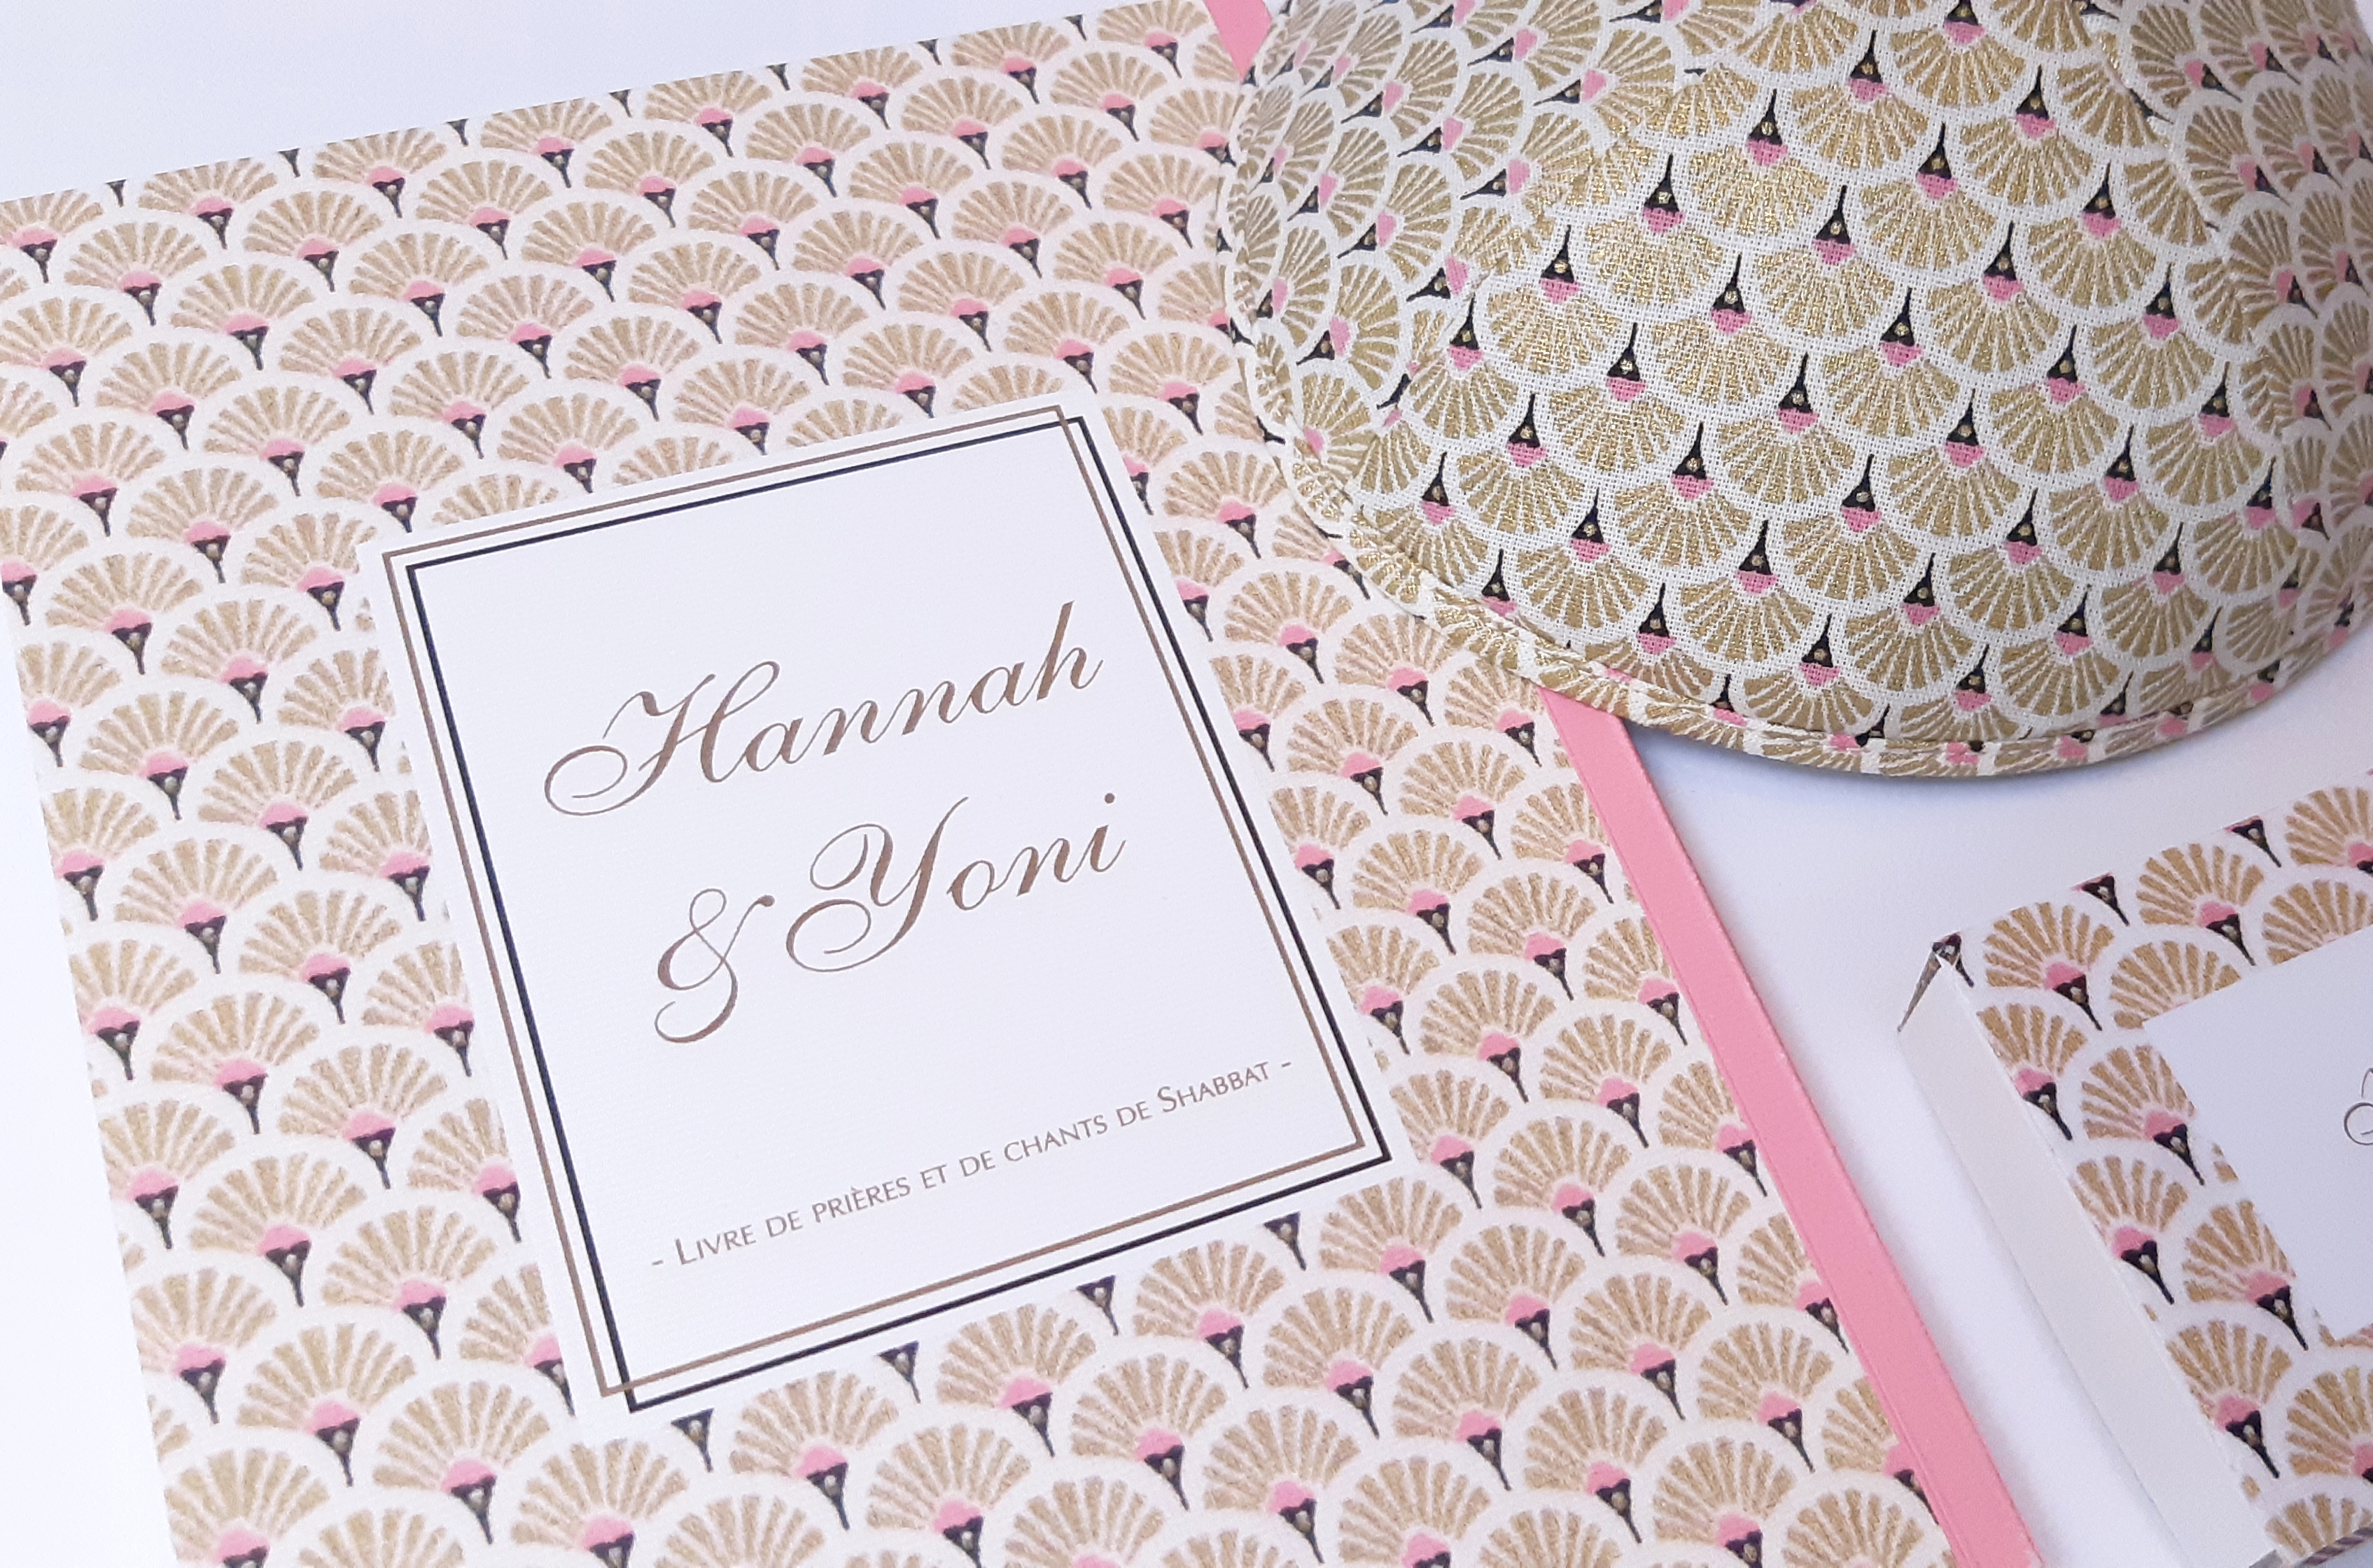 graphisme, papeterie,gift, cadeaux, naissance, birth, personalized